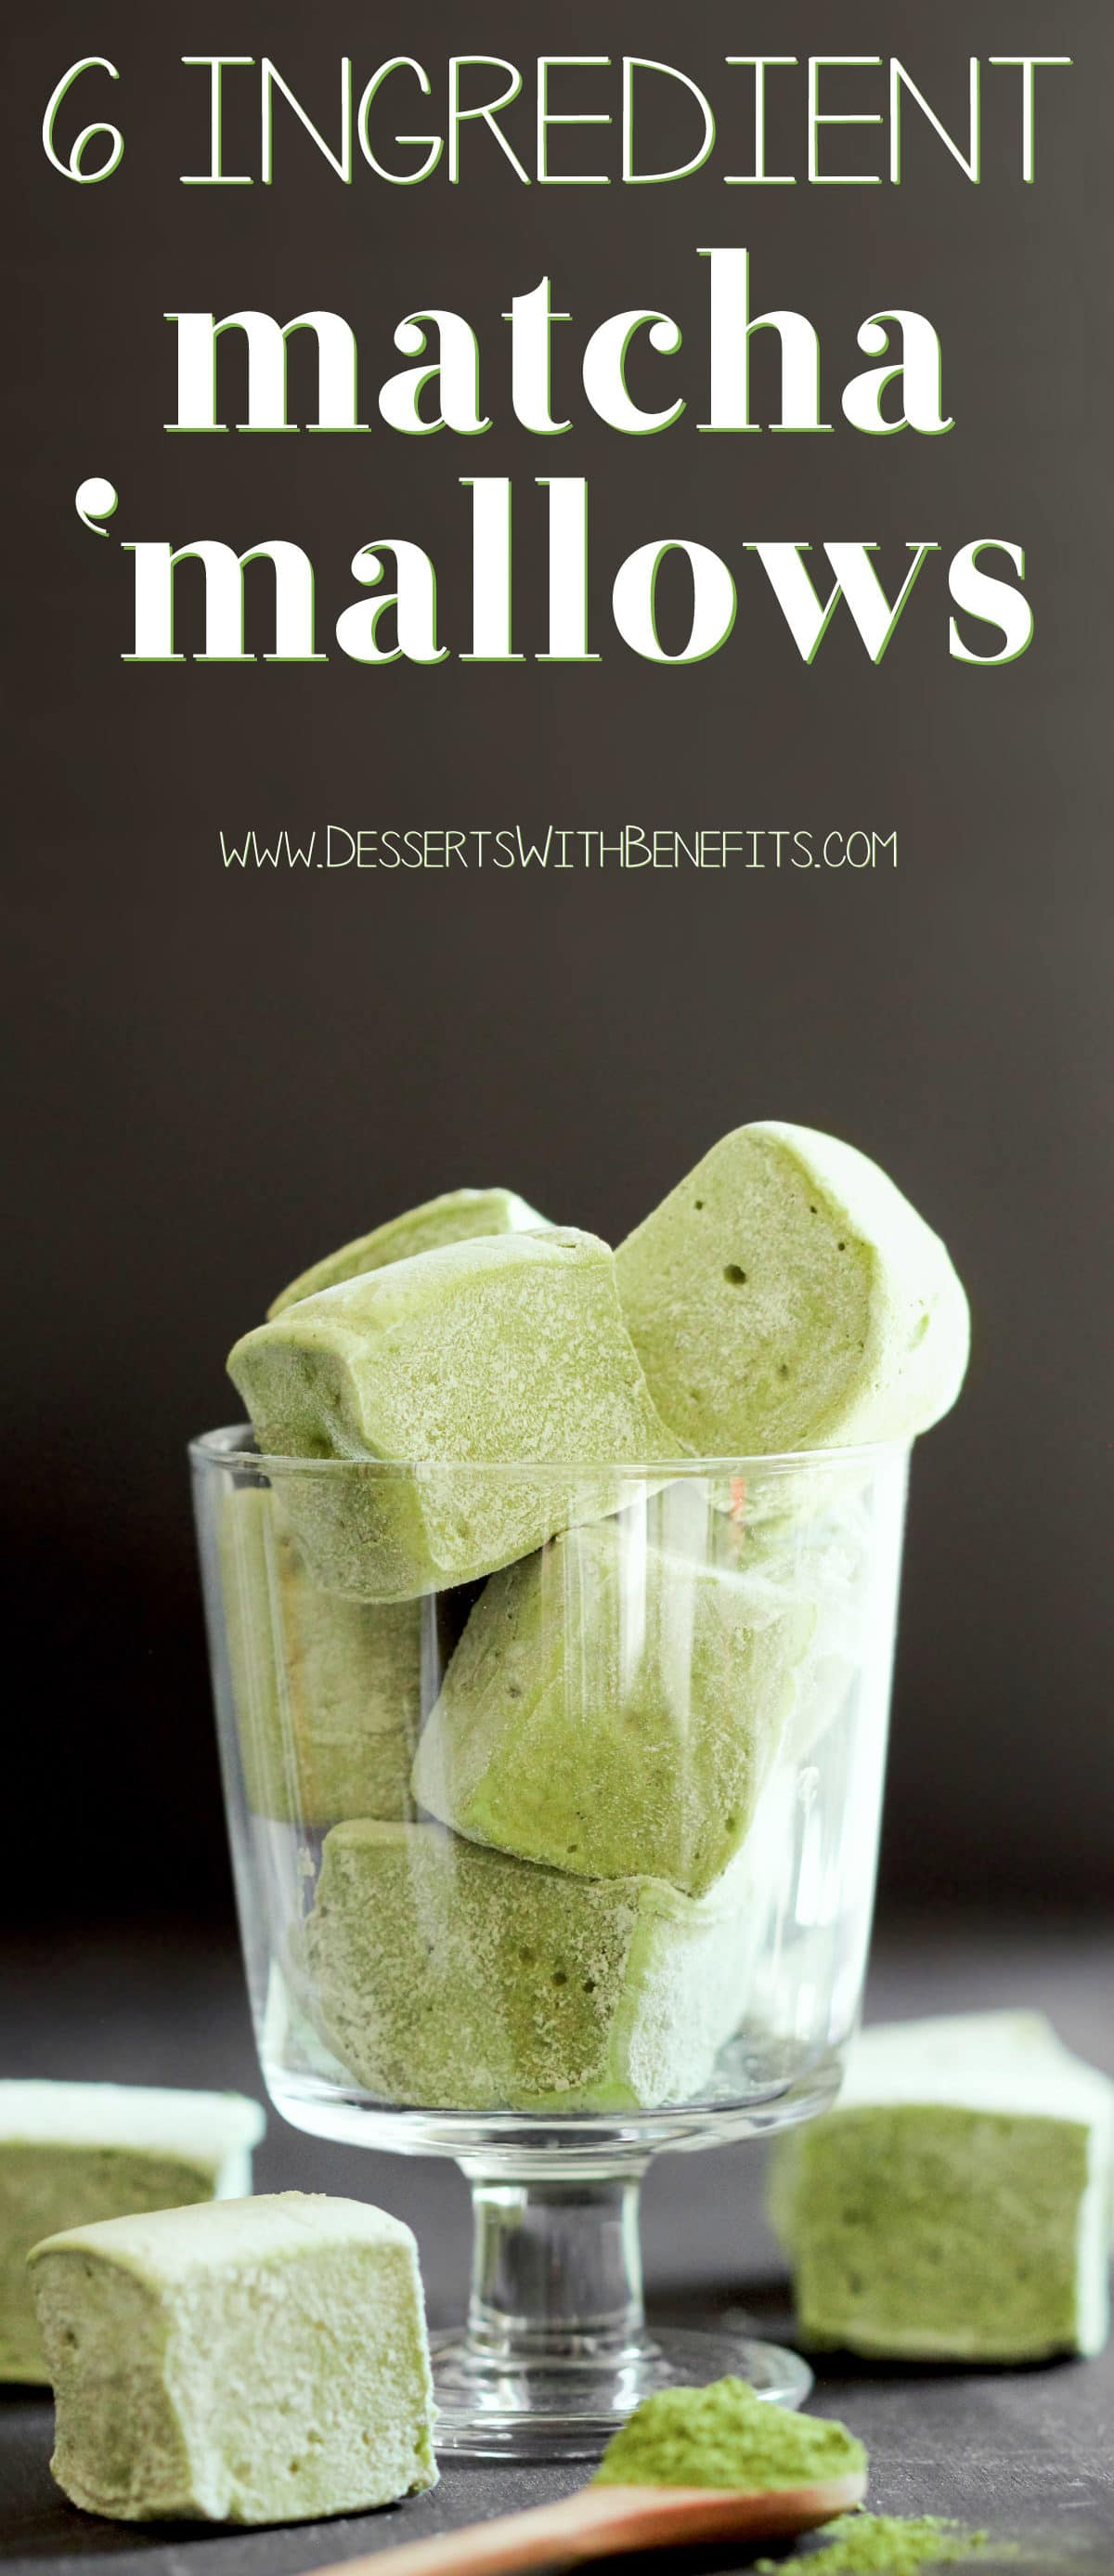 (How to Make Homemade Marshmallows) This recipe for super light and fluffy Healthy Matcha Green Tea Marshmallows is fun to make and has just 6 simple ingredients (with no high fructose corn syrup in sight)! Healthy Dessert Recipes with sugar free, low calorie, low fat, low carb, high protein, gluten free, dairy free, vegan, and raw options at the Desserts With Benefits Blog (www.DessertsWithBenefits.com)